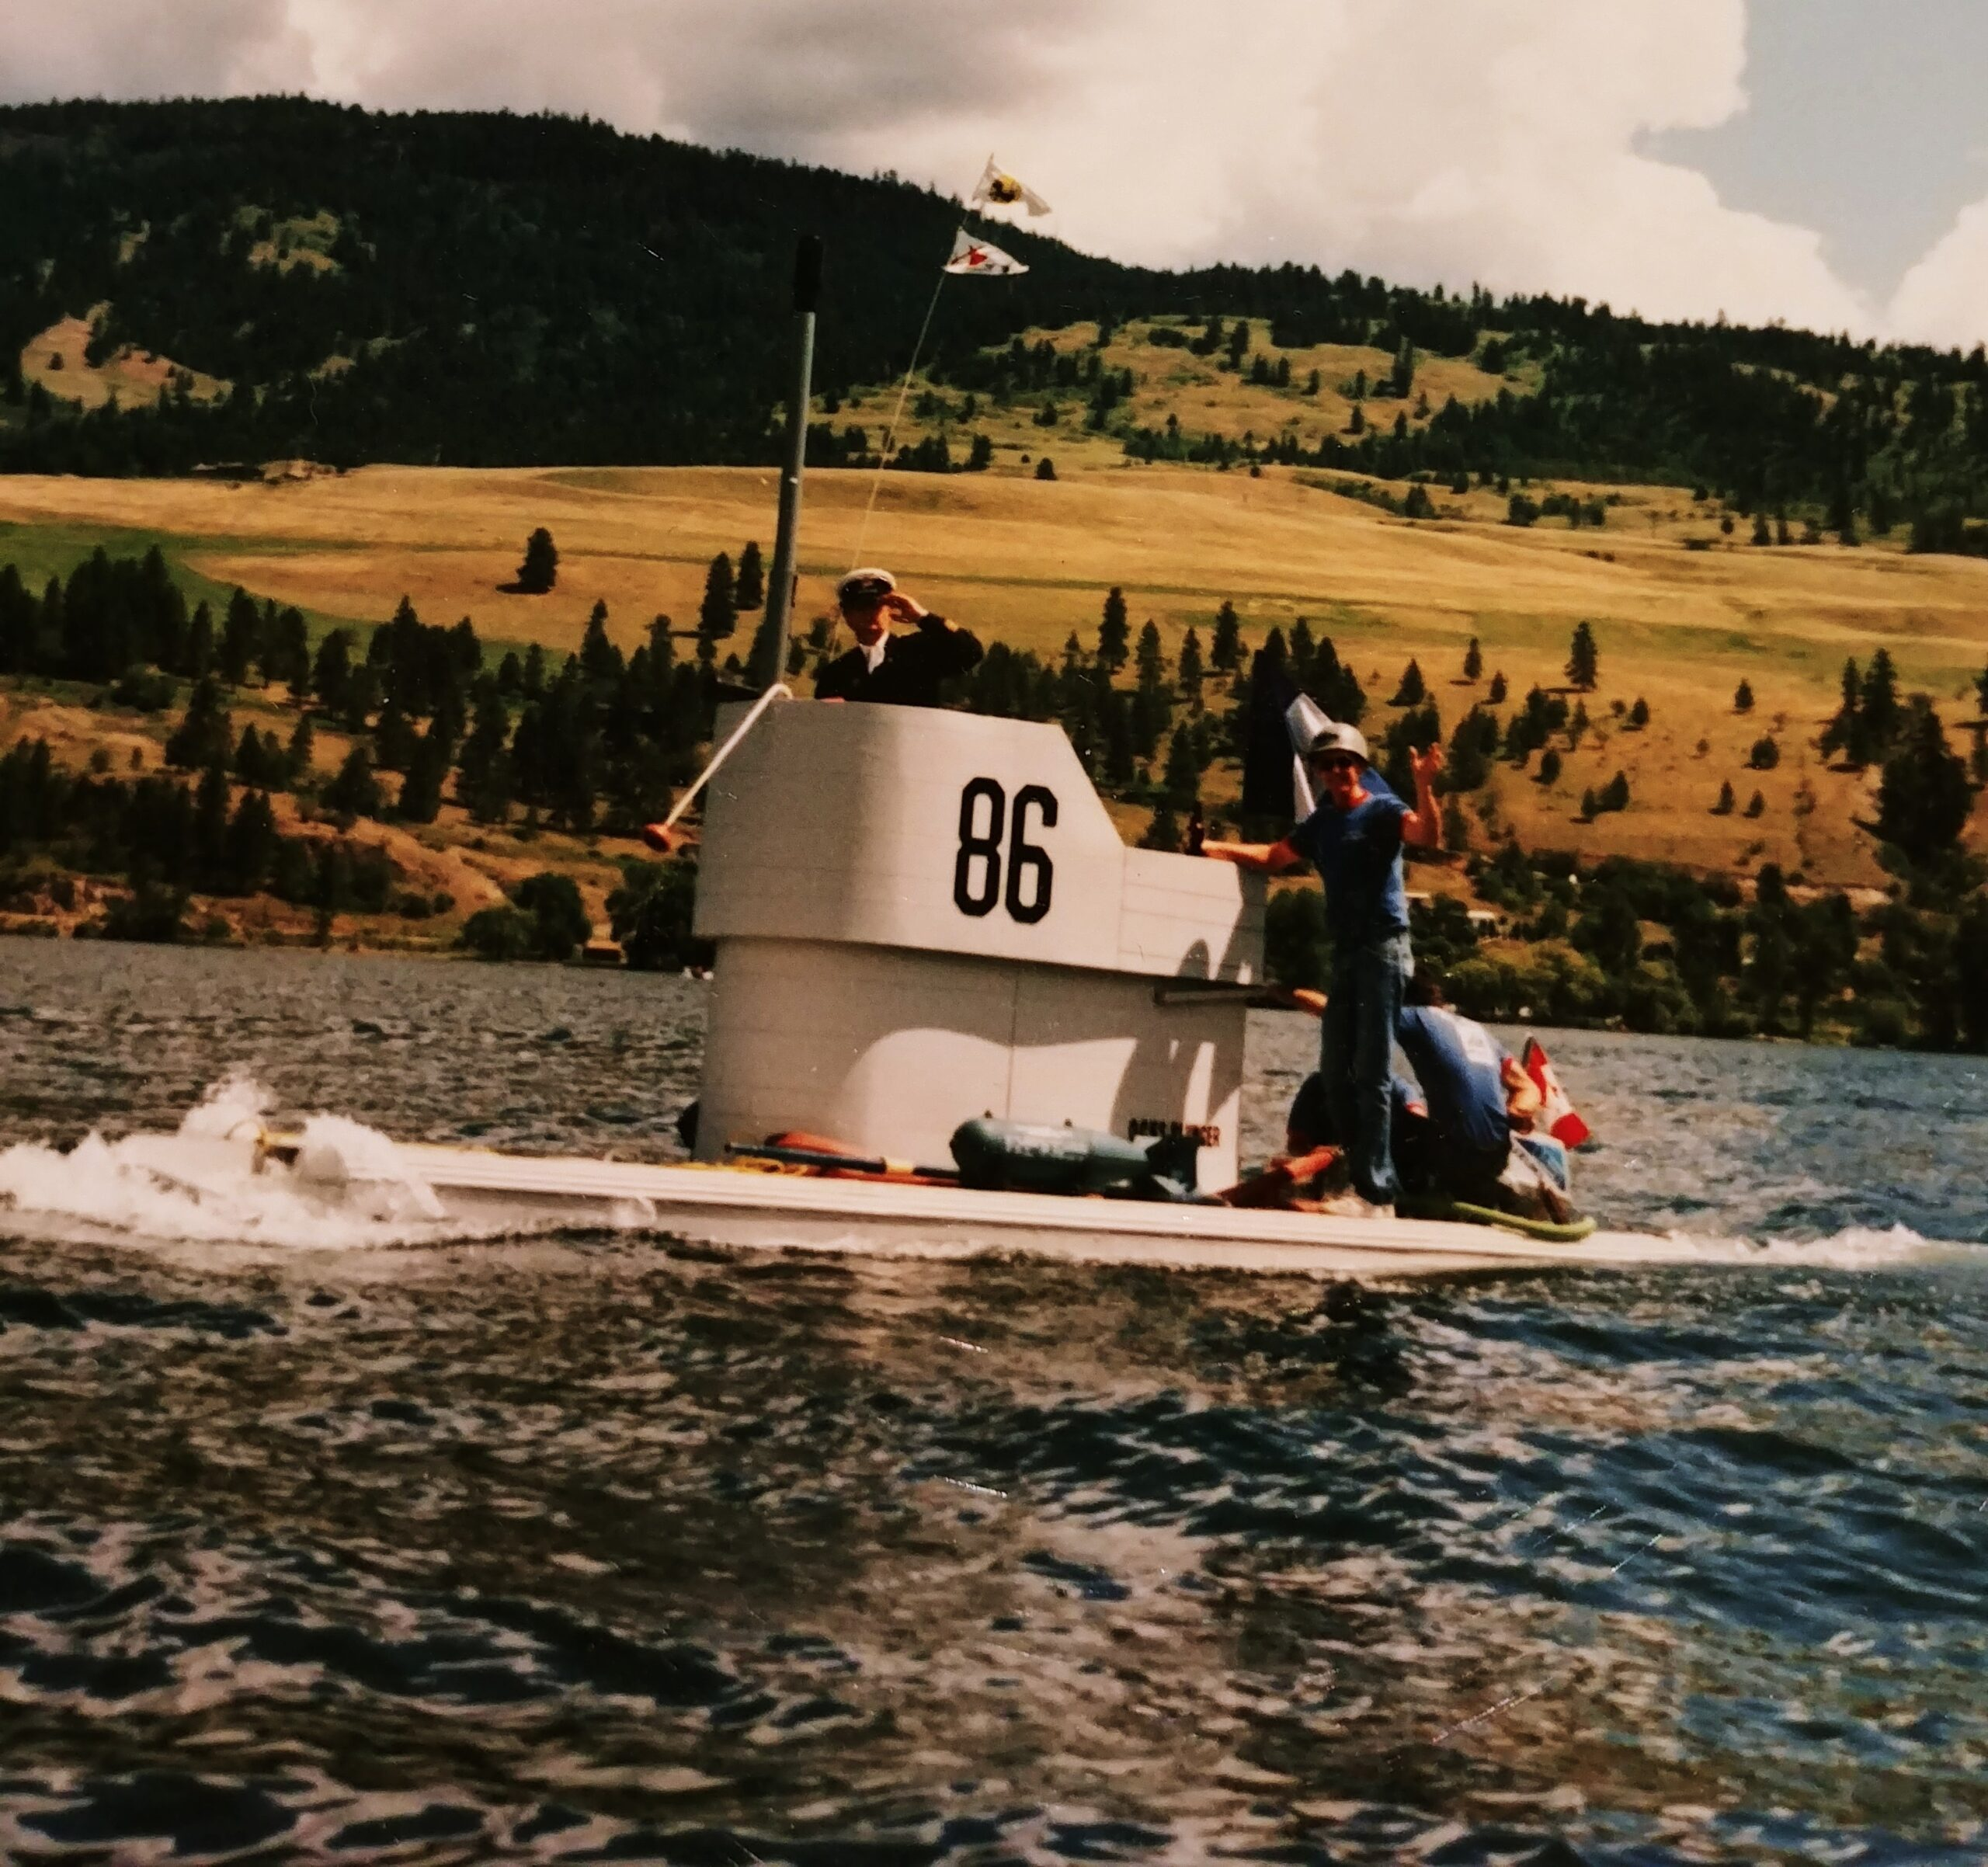 Submarine in action on Okanagan Lake